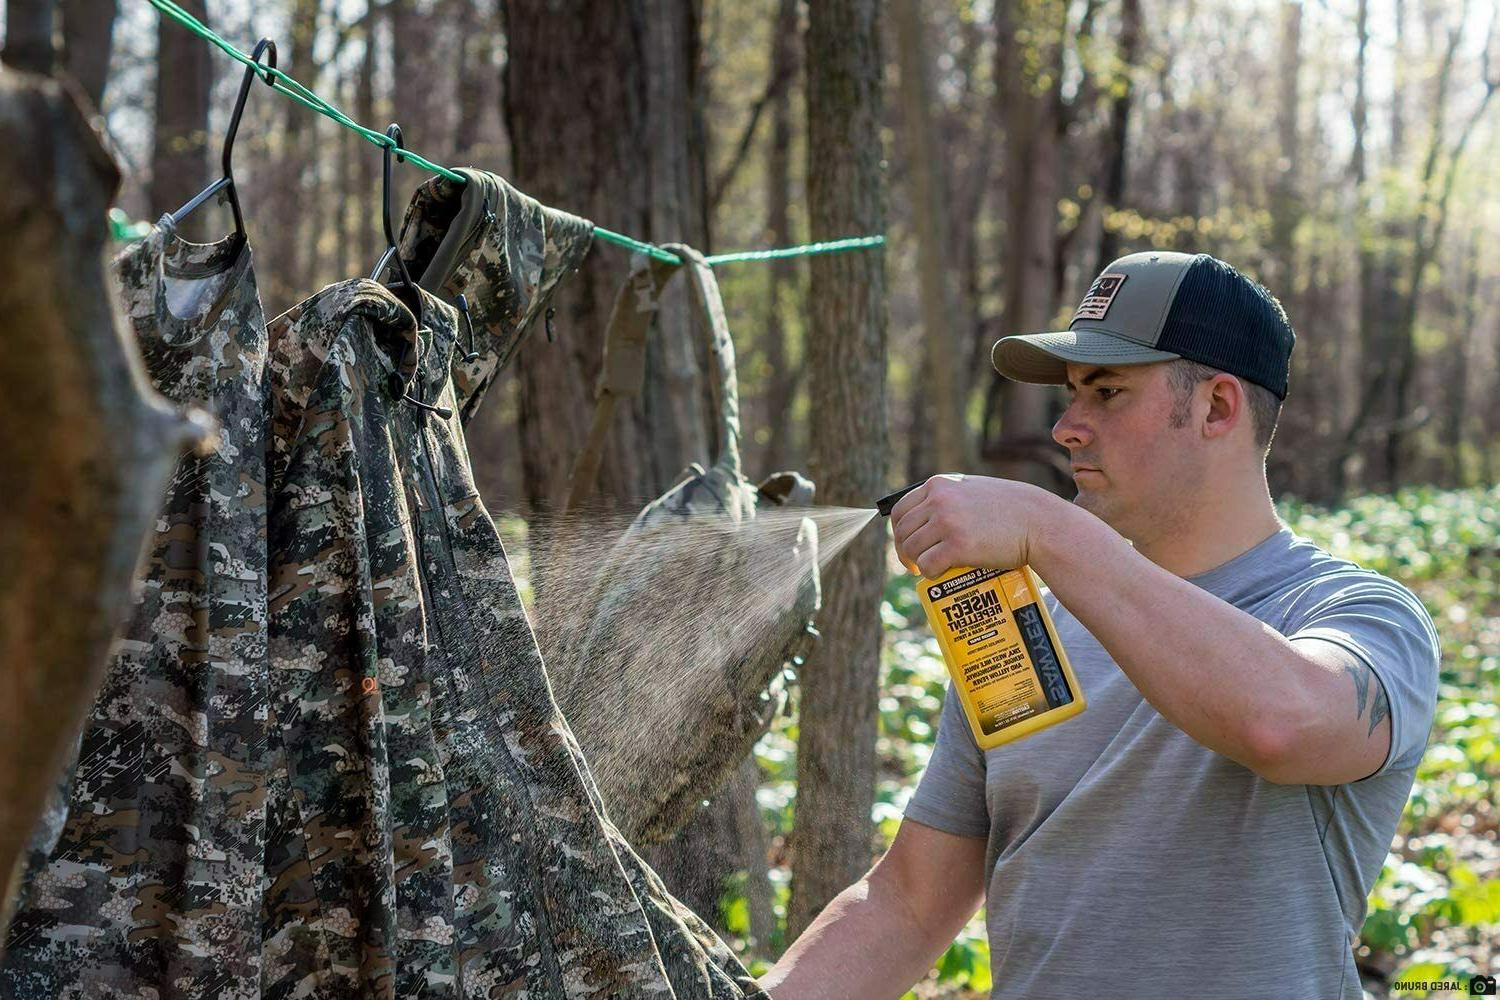 Sawyer Premium Permethrin Mosquito Insect Repellent Spray Gear & Tents